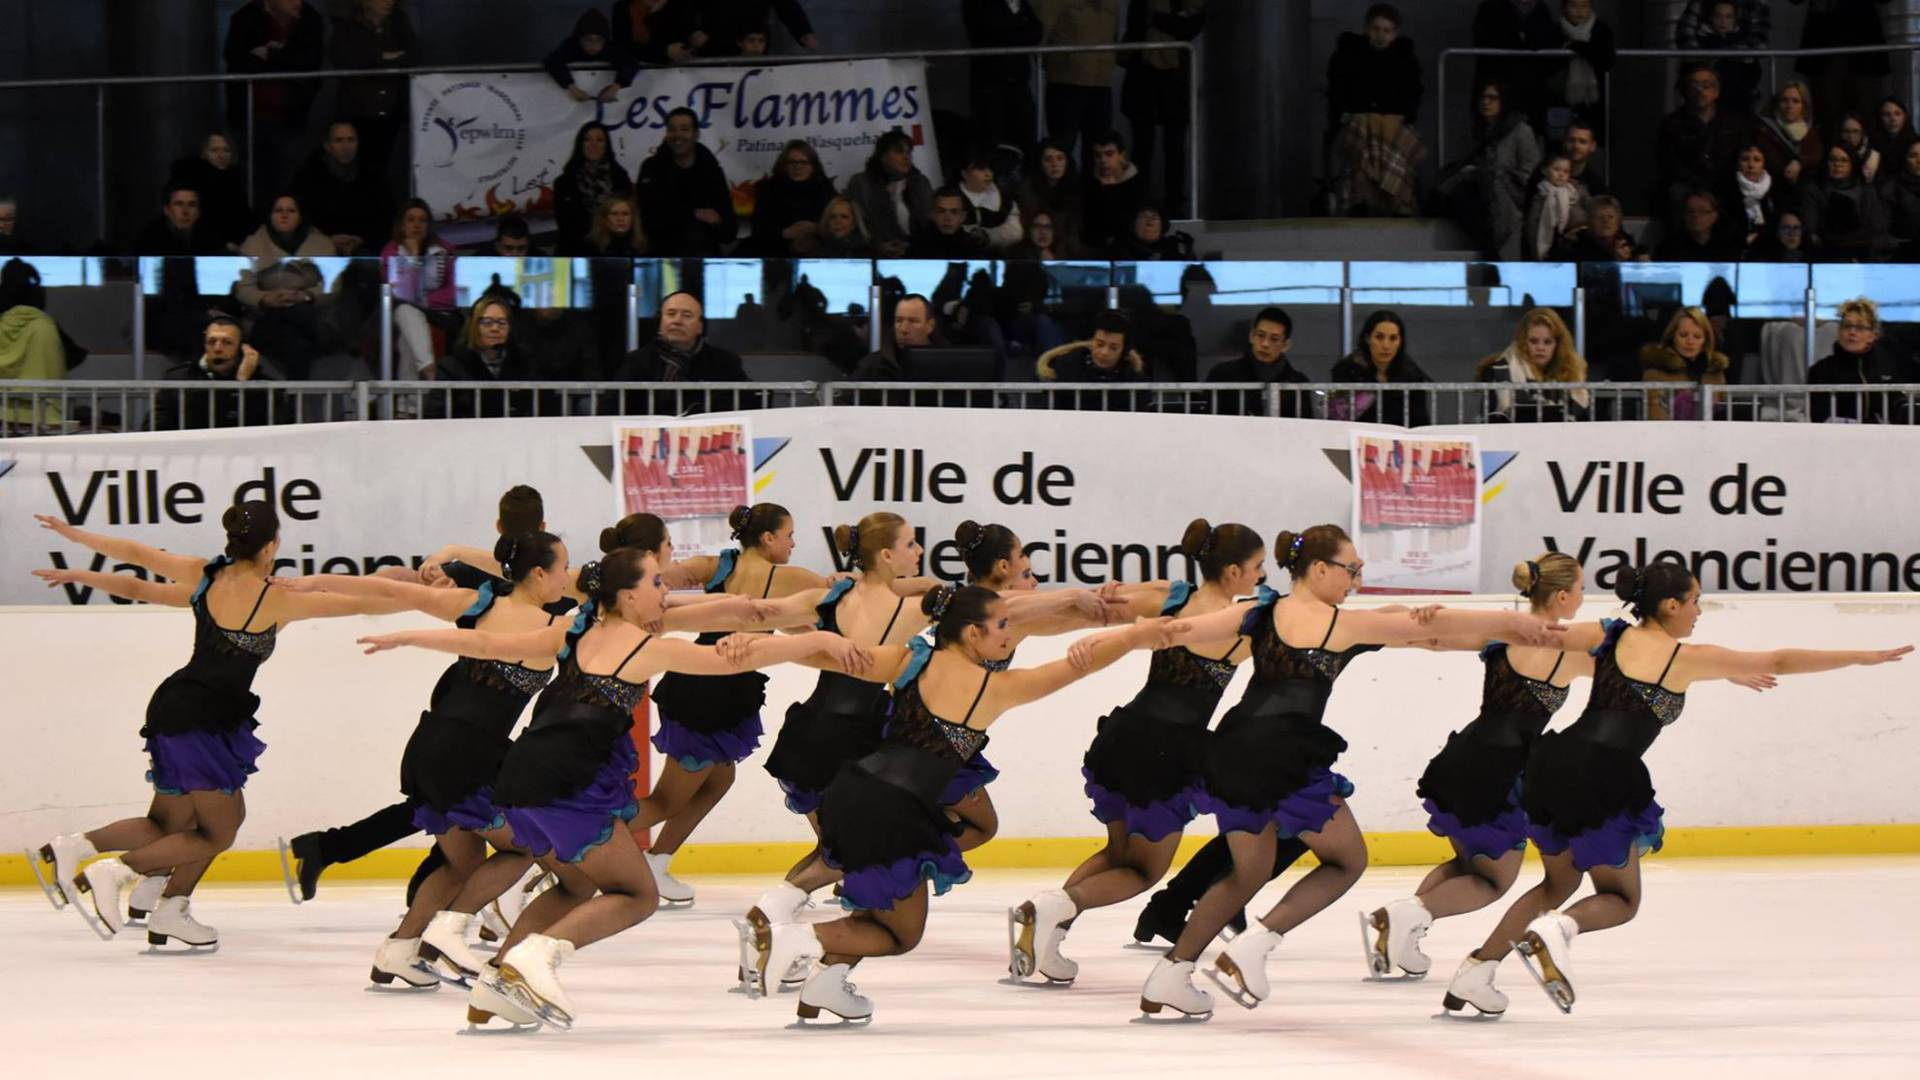 patinage-synchronisé©LucAnzou